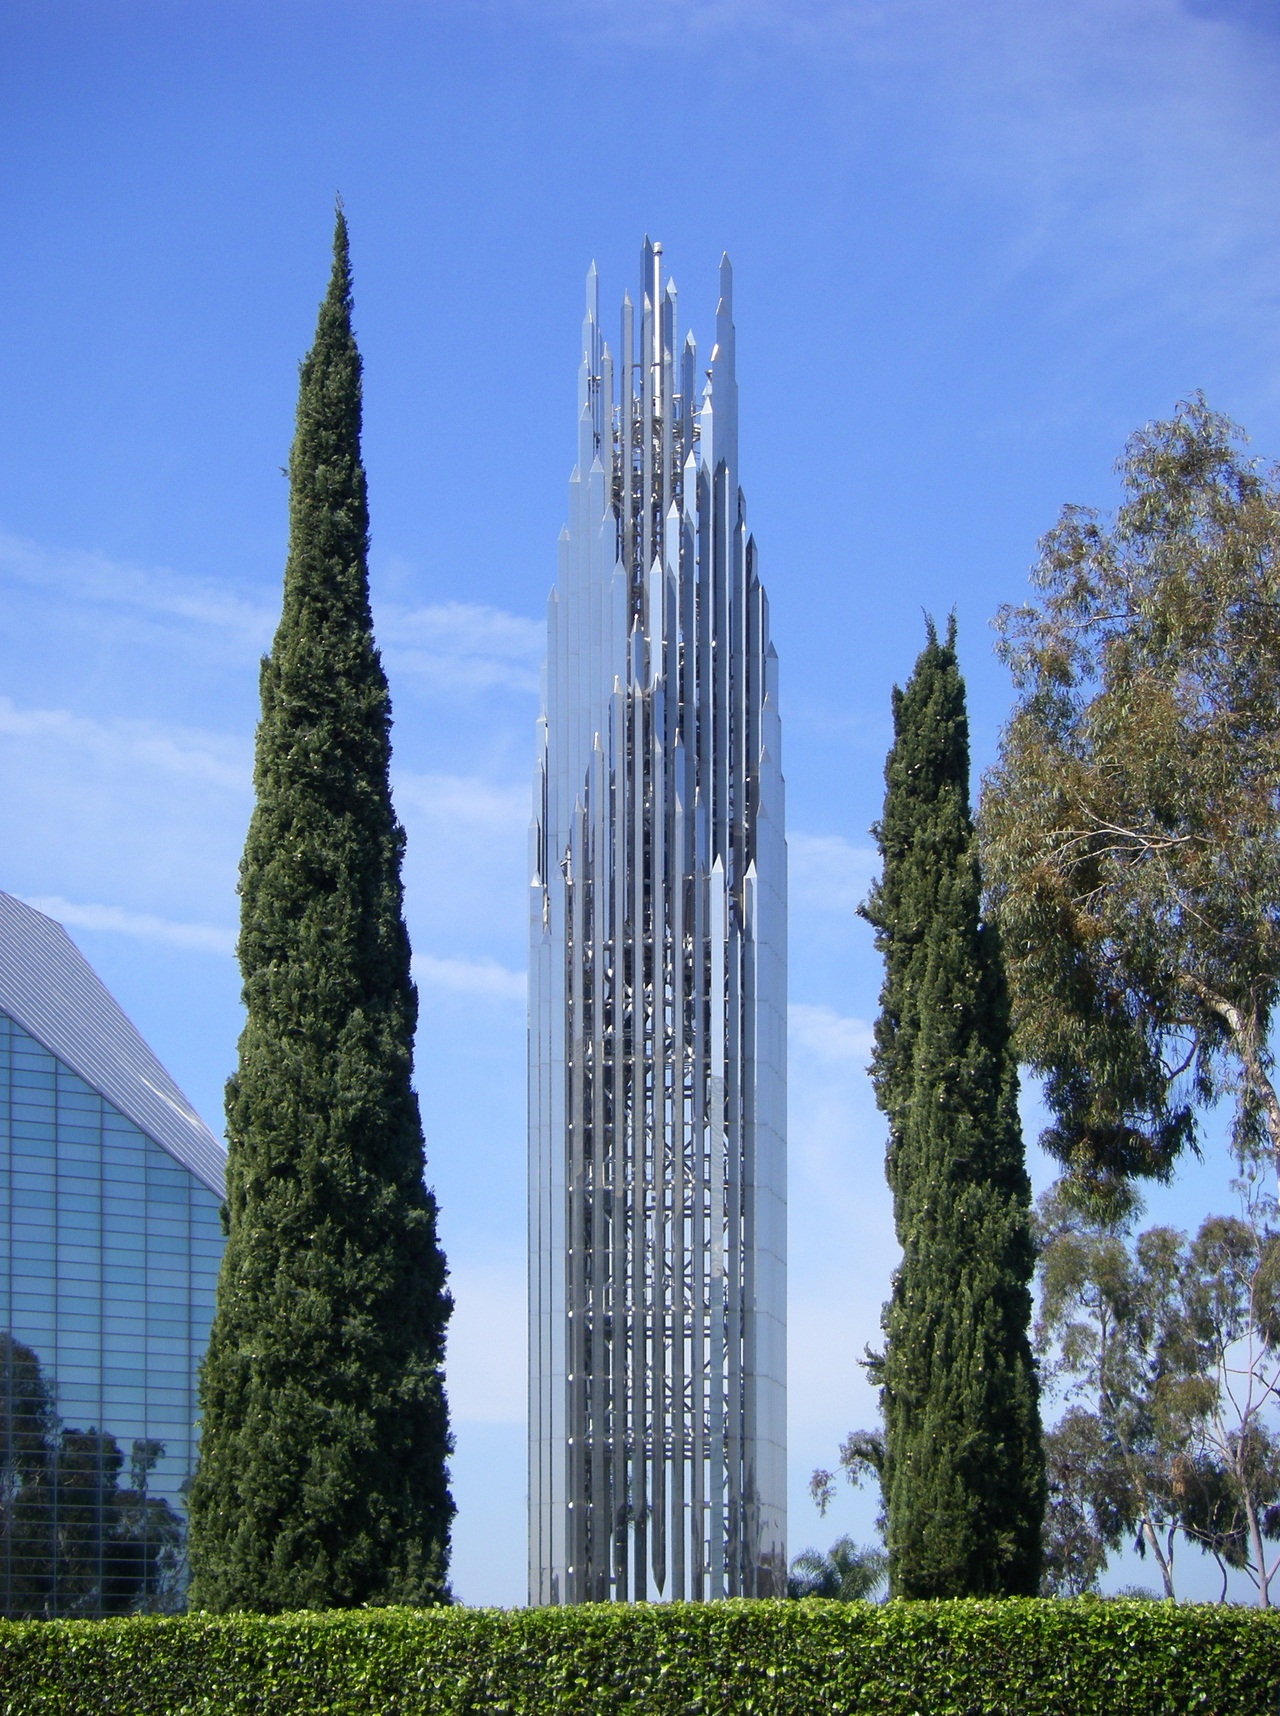 Spire of the Crystal Cathedral, Garden Grove (Anaheim/Los Angeles). (C) 2009 [http://commons.wikimedia.org/wiki/User:Wattewyl Wikimedia user